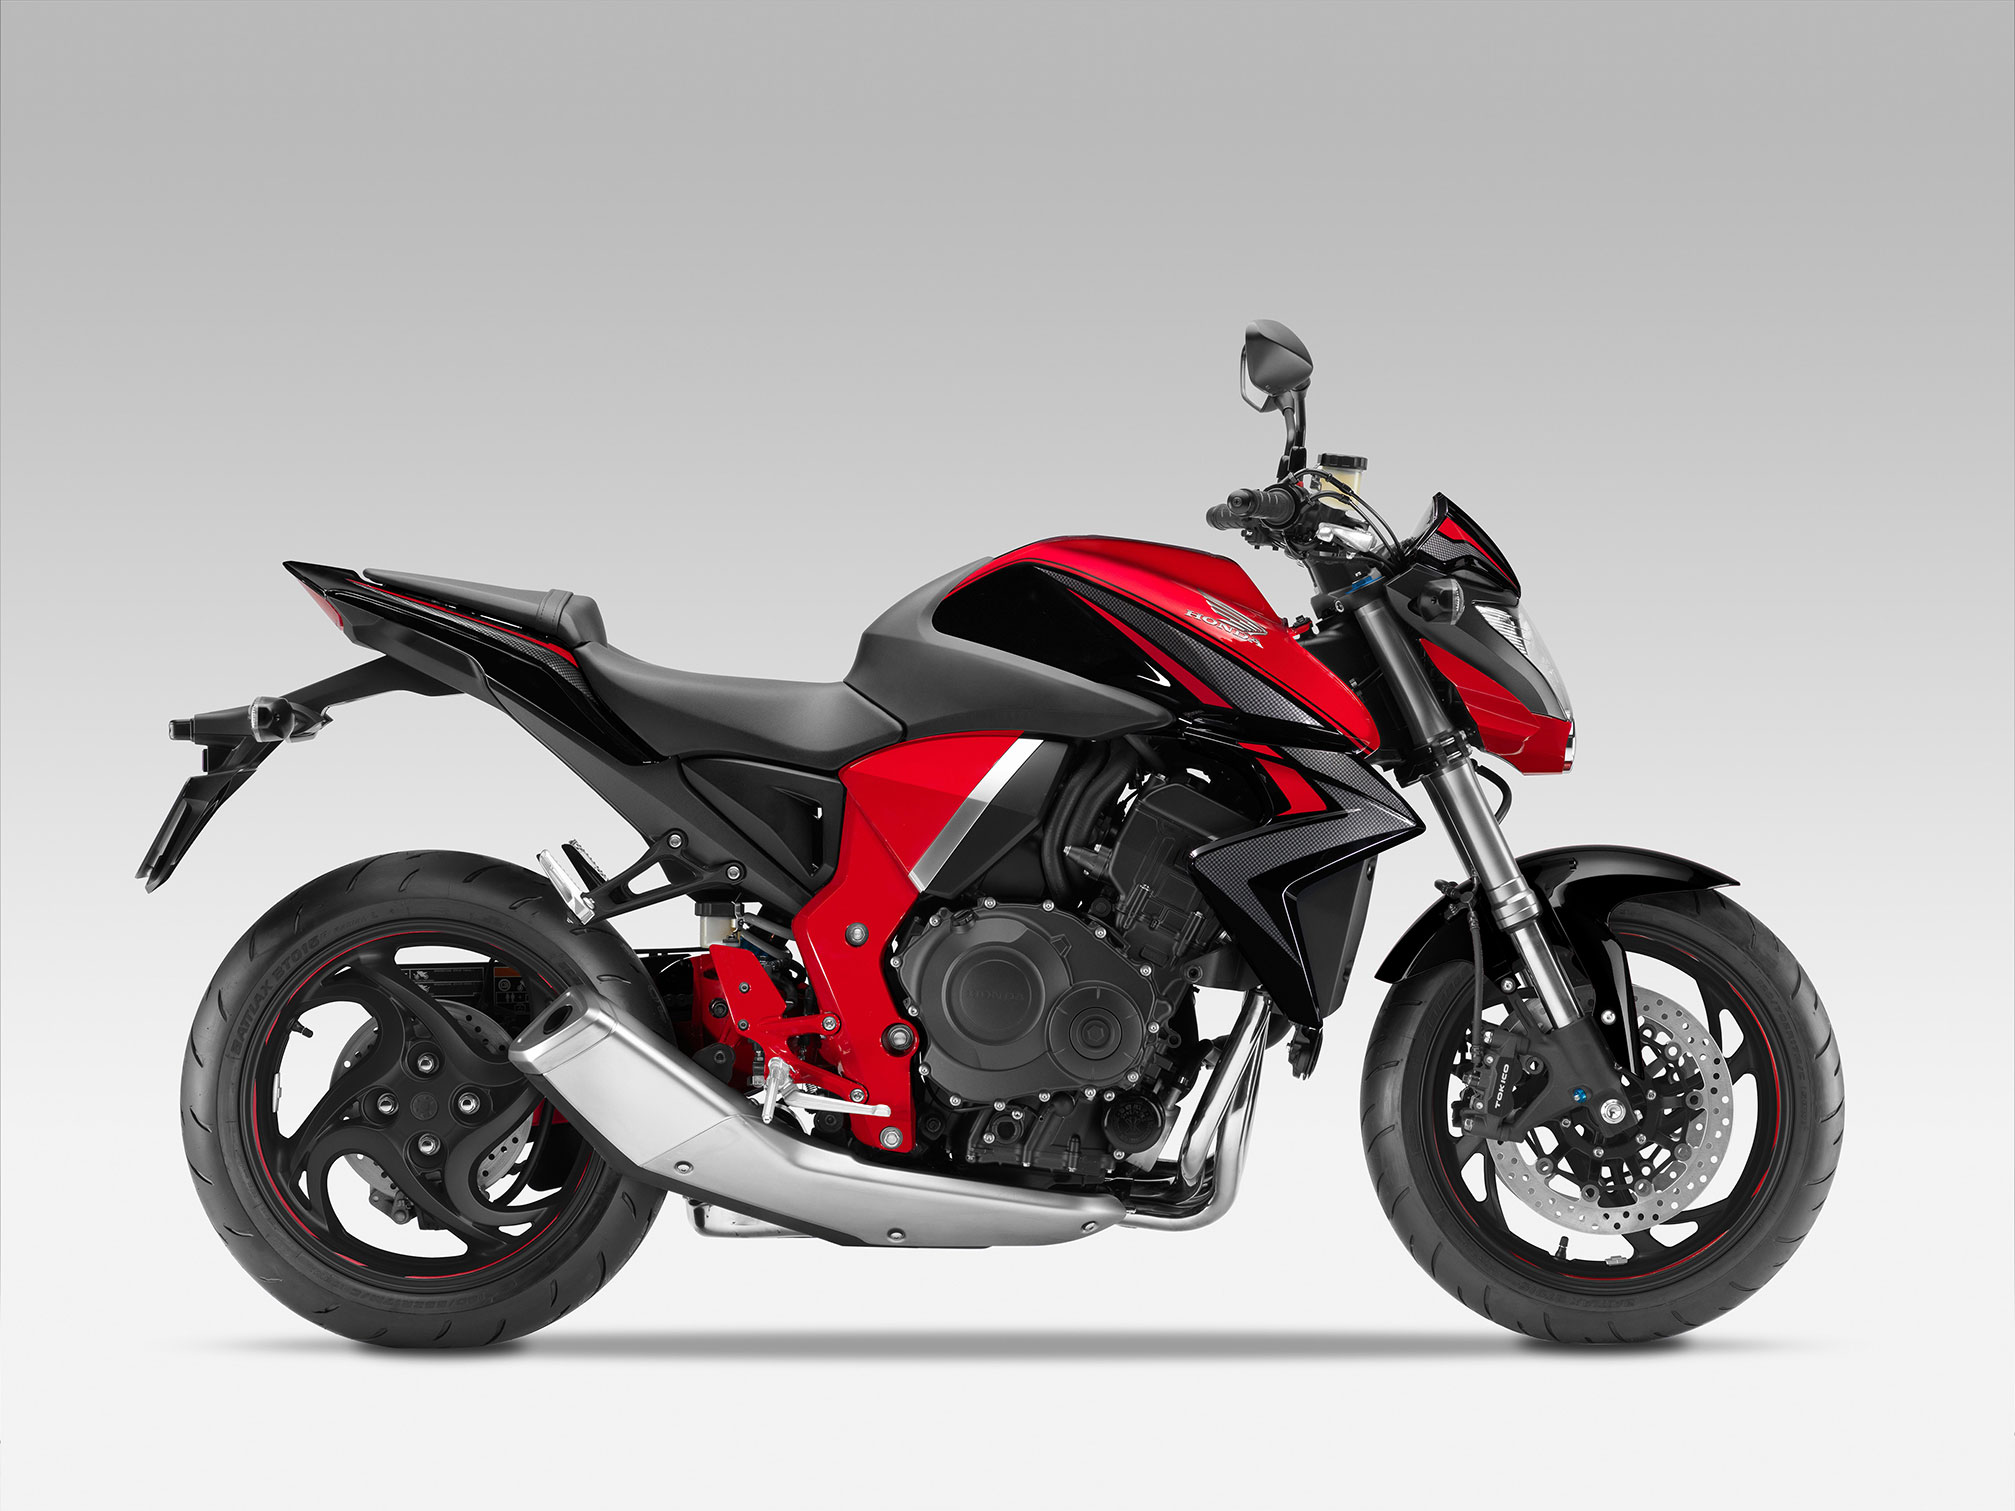 2015 Honda CB1000R Review